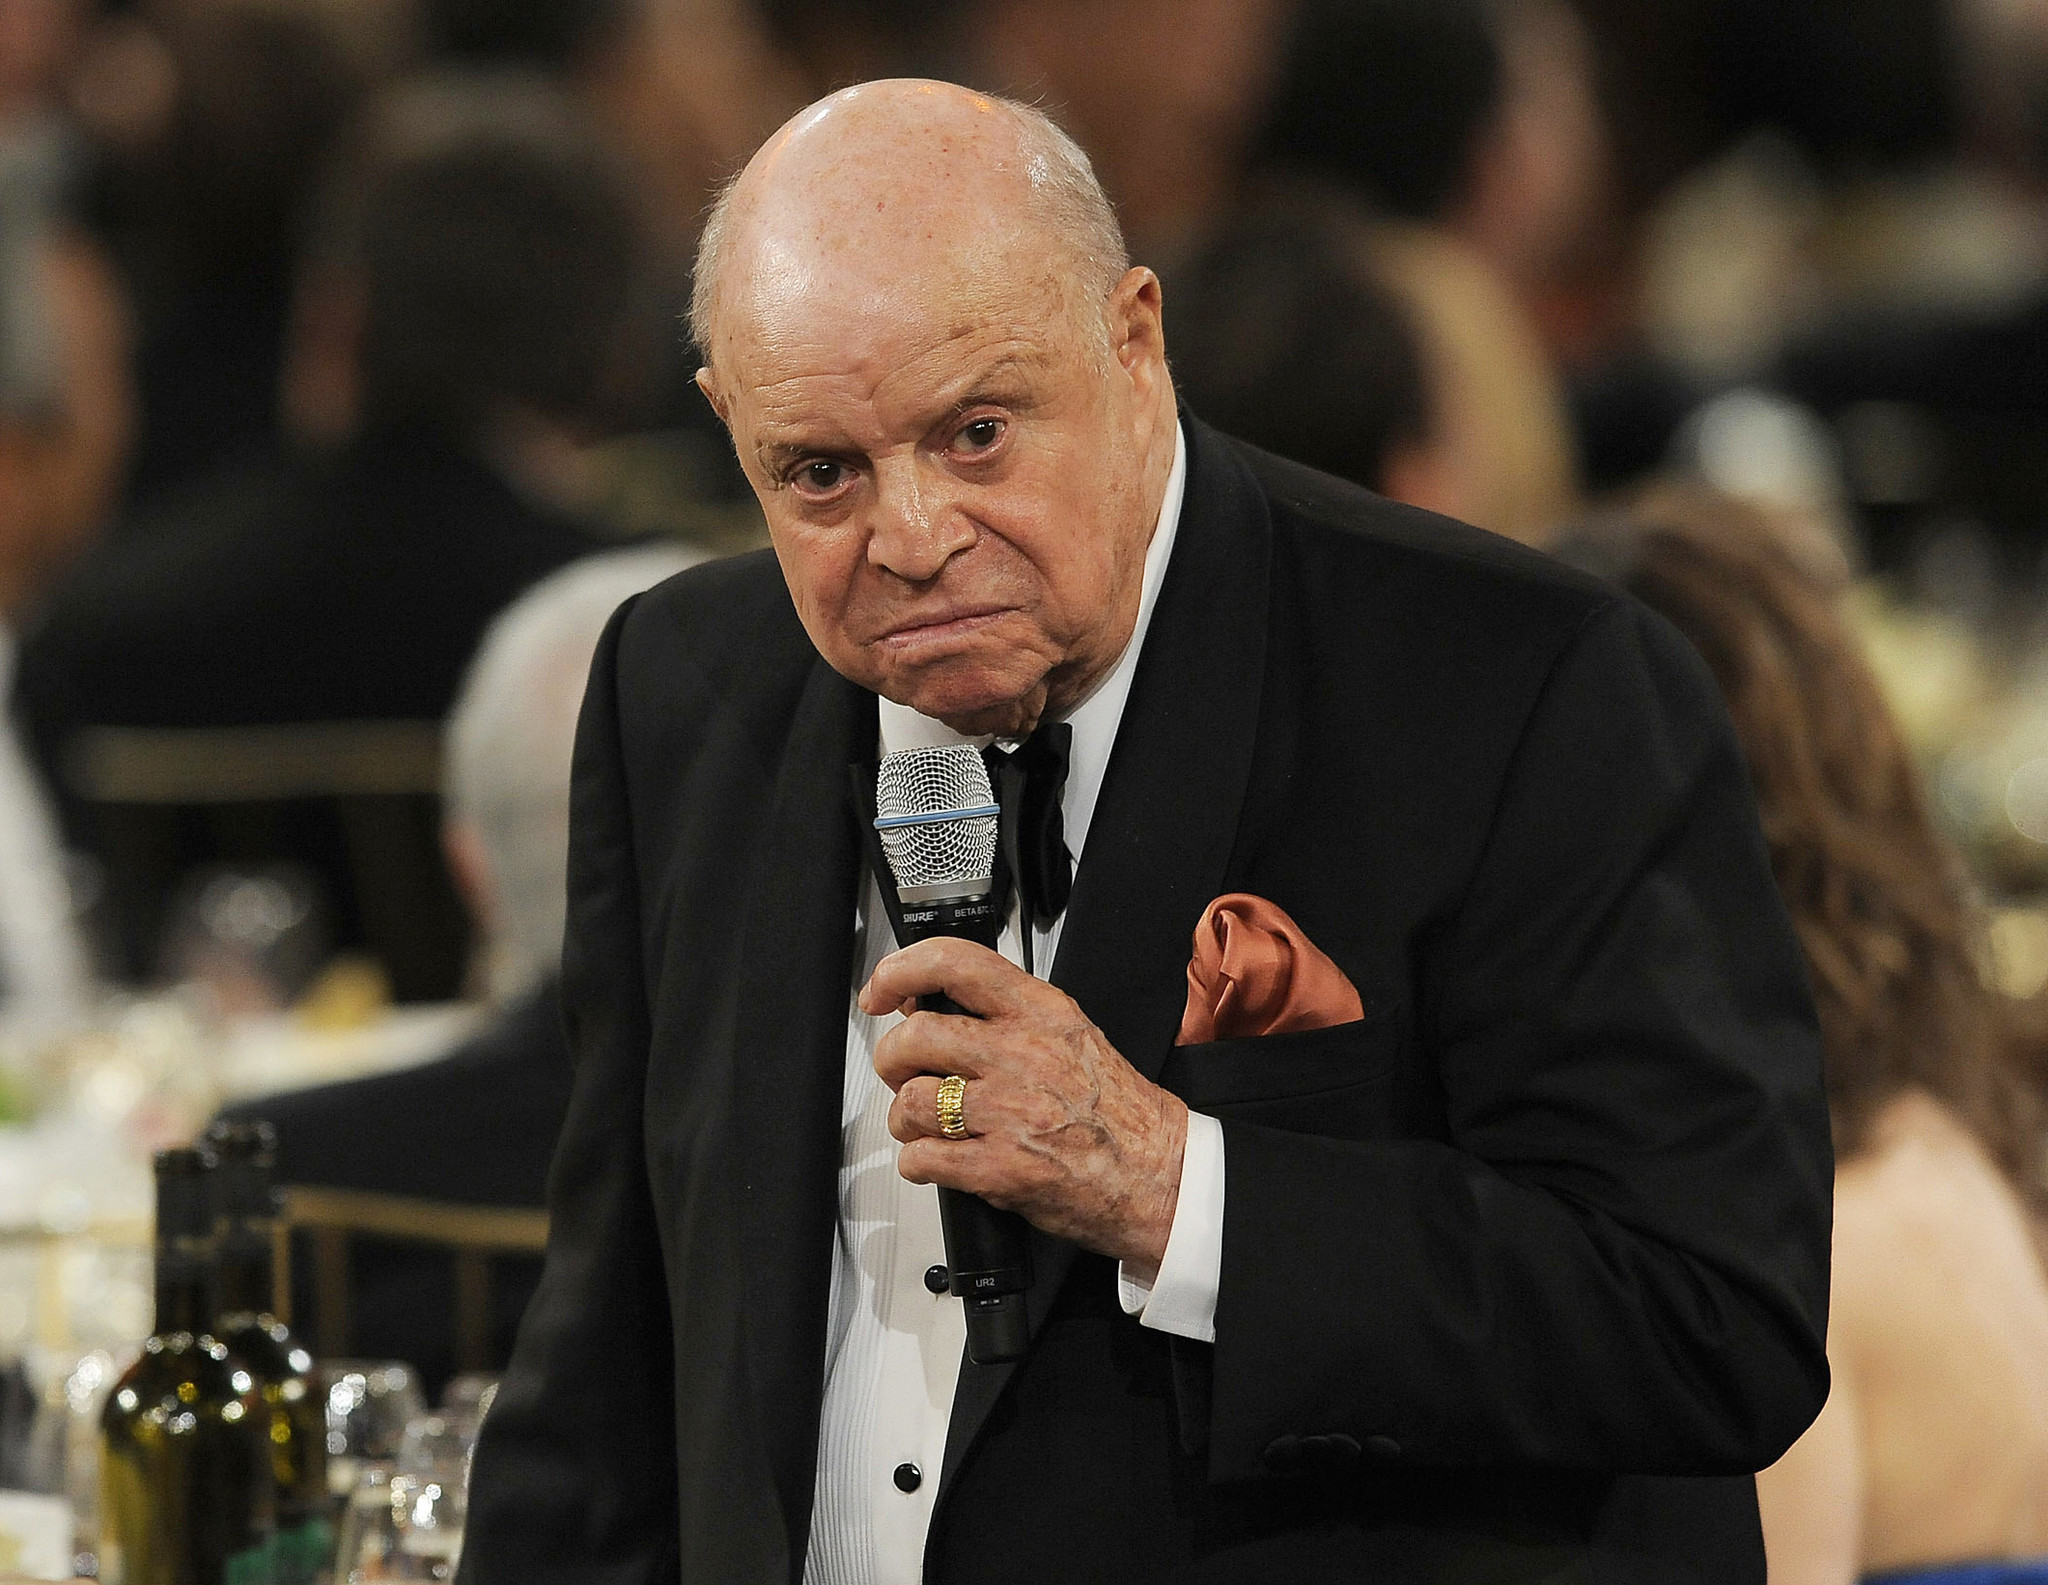 don rickles letterman 2014don rickles на русском, don rickles quotes, don rickles 2016, don rickles twitter, don rickles youtube, don rickles casino, don rickles best of, don rickles jimmy fallon, don rickles revenge, don rickles daughter, don rickles and frank sinatra, don rickles sinatra, don rickles letterman 2014, don rickles roast, don rickles roasts frank sinatra, don rickles one night only, don rickles субтитры, don rickles insult comedy, don rickles stand up, don rickles videos